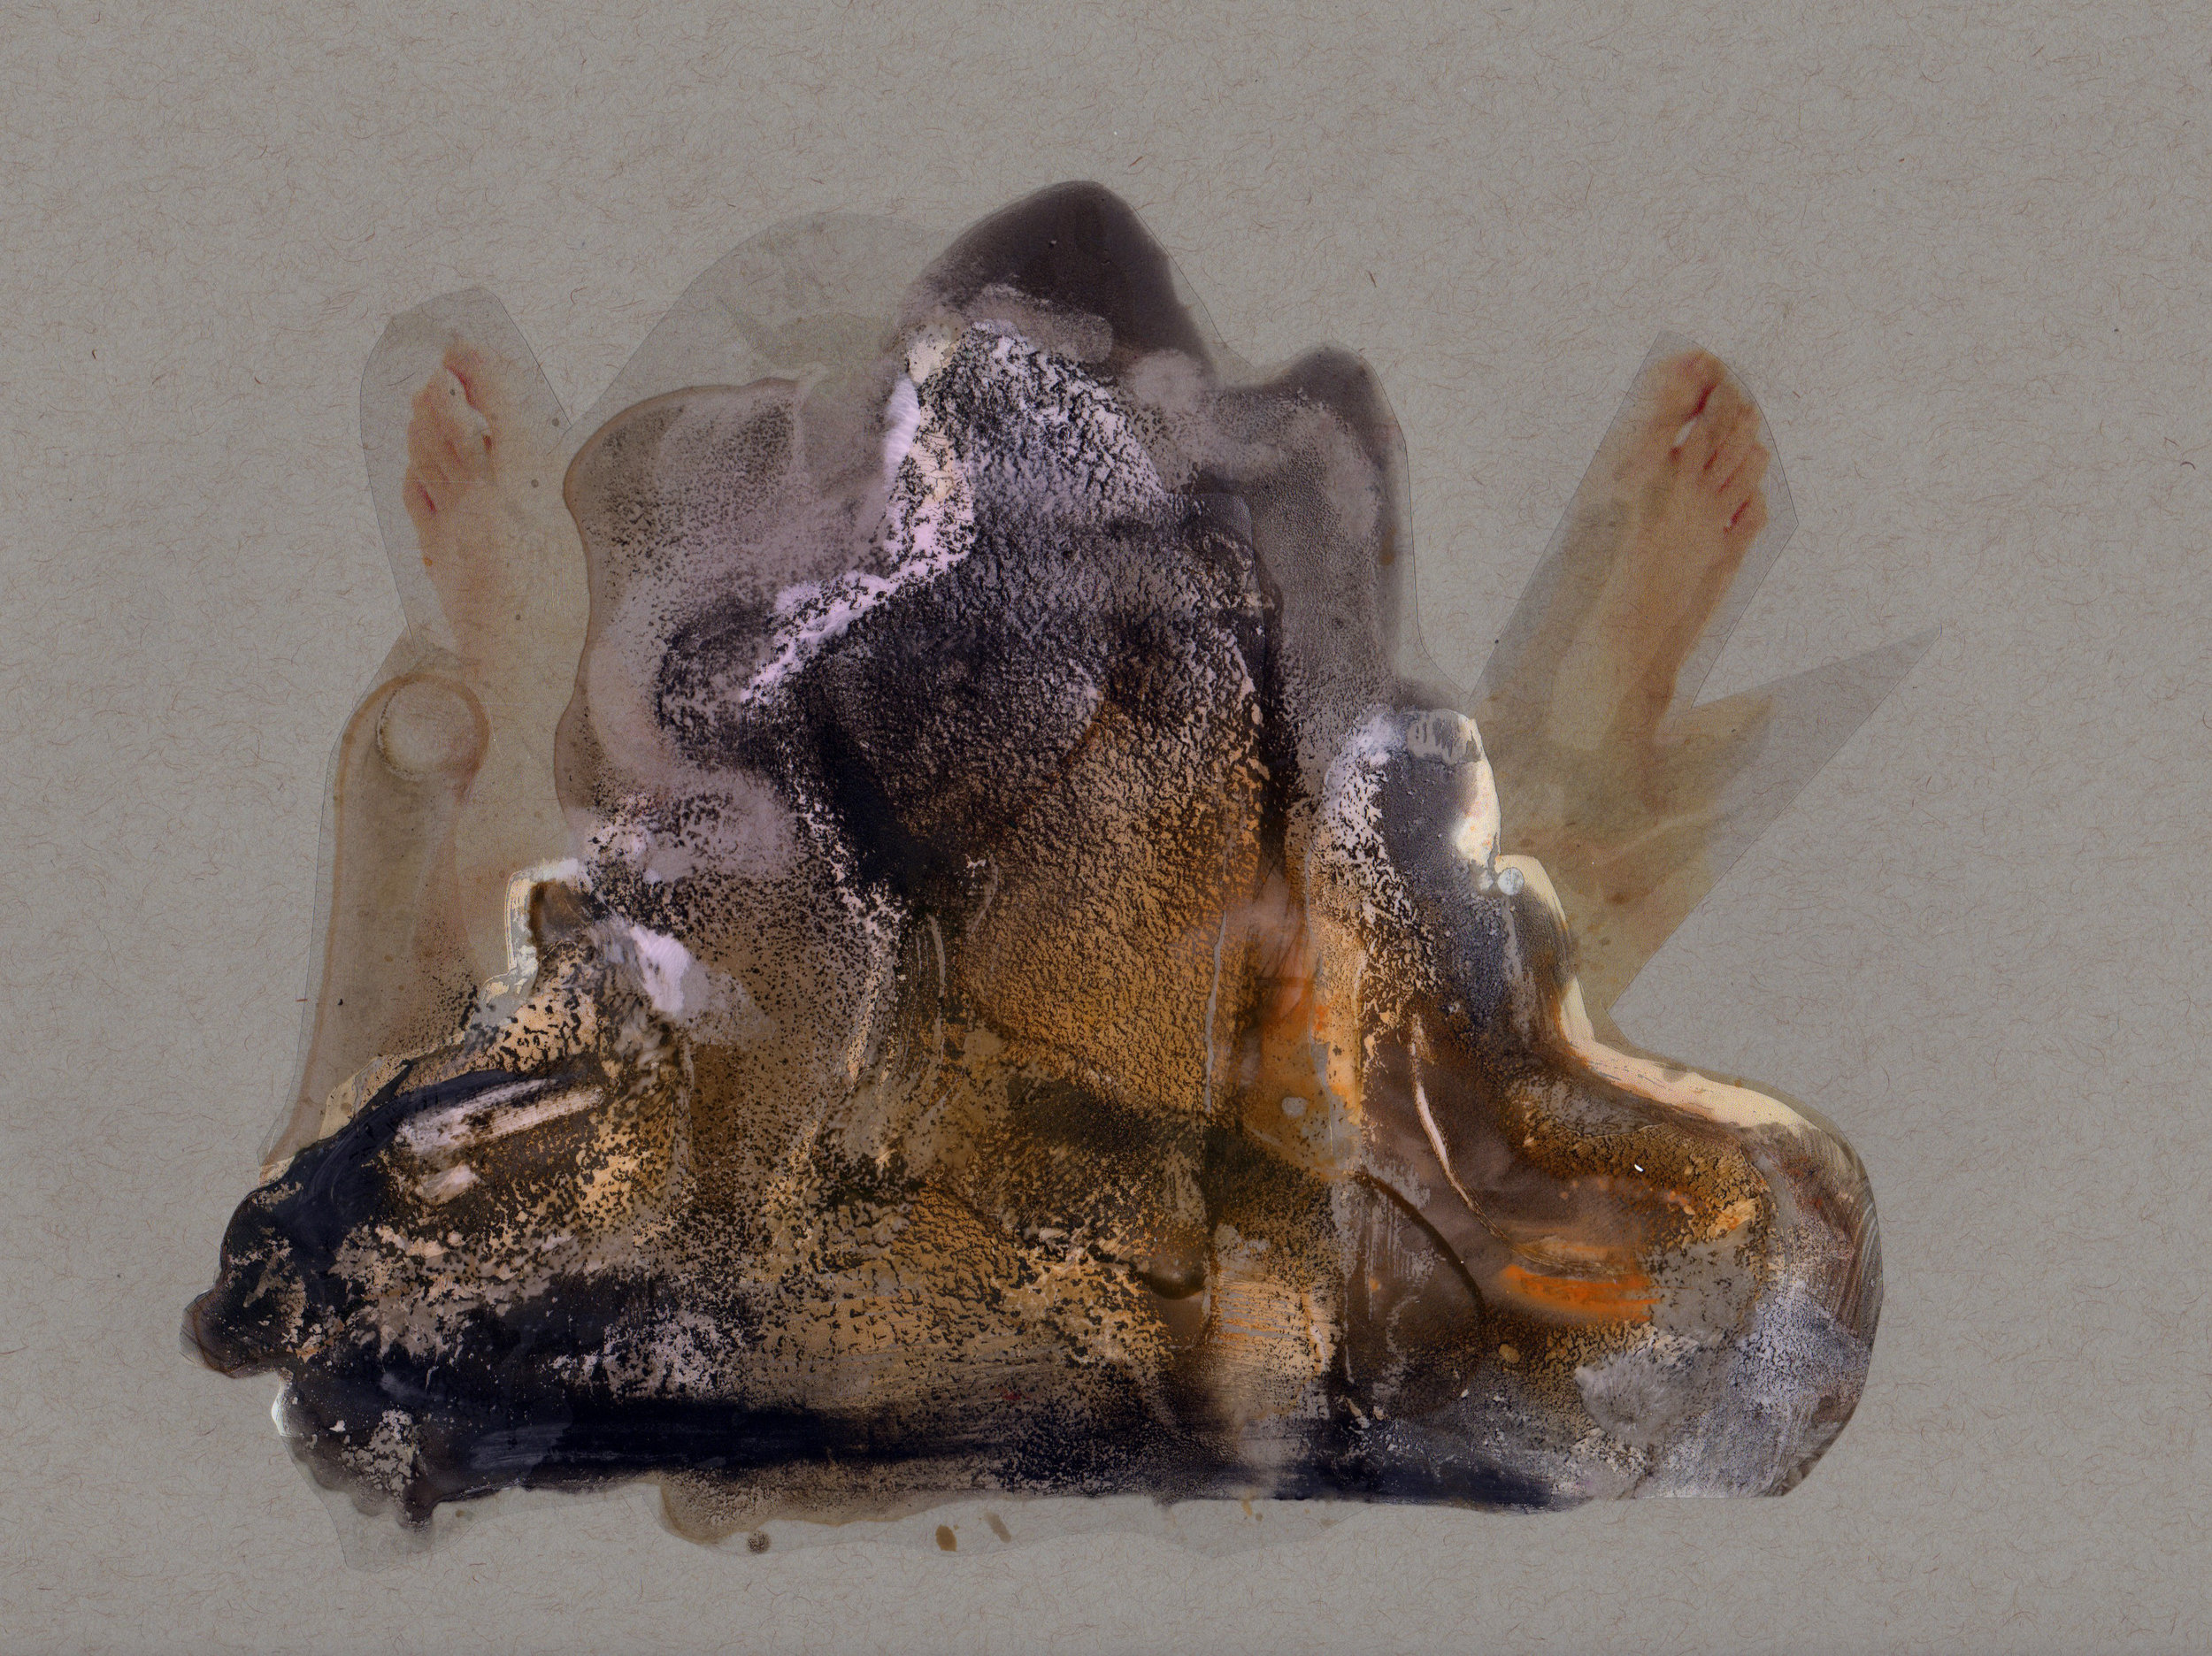 Beyond Understanding, 2014, paint transparency archival ink and paper, 9x12 inches